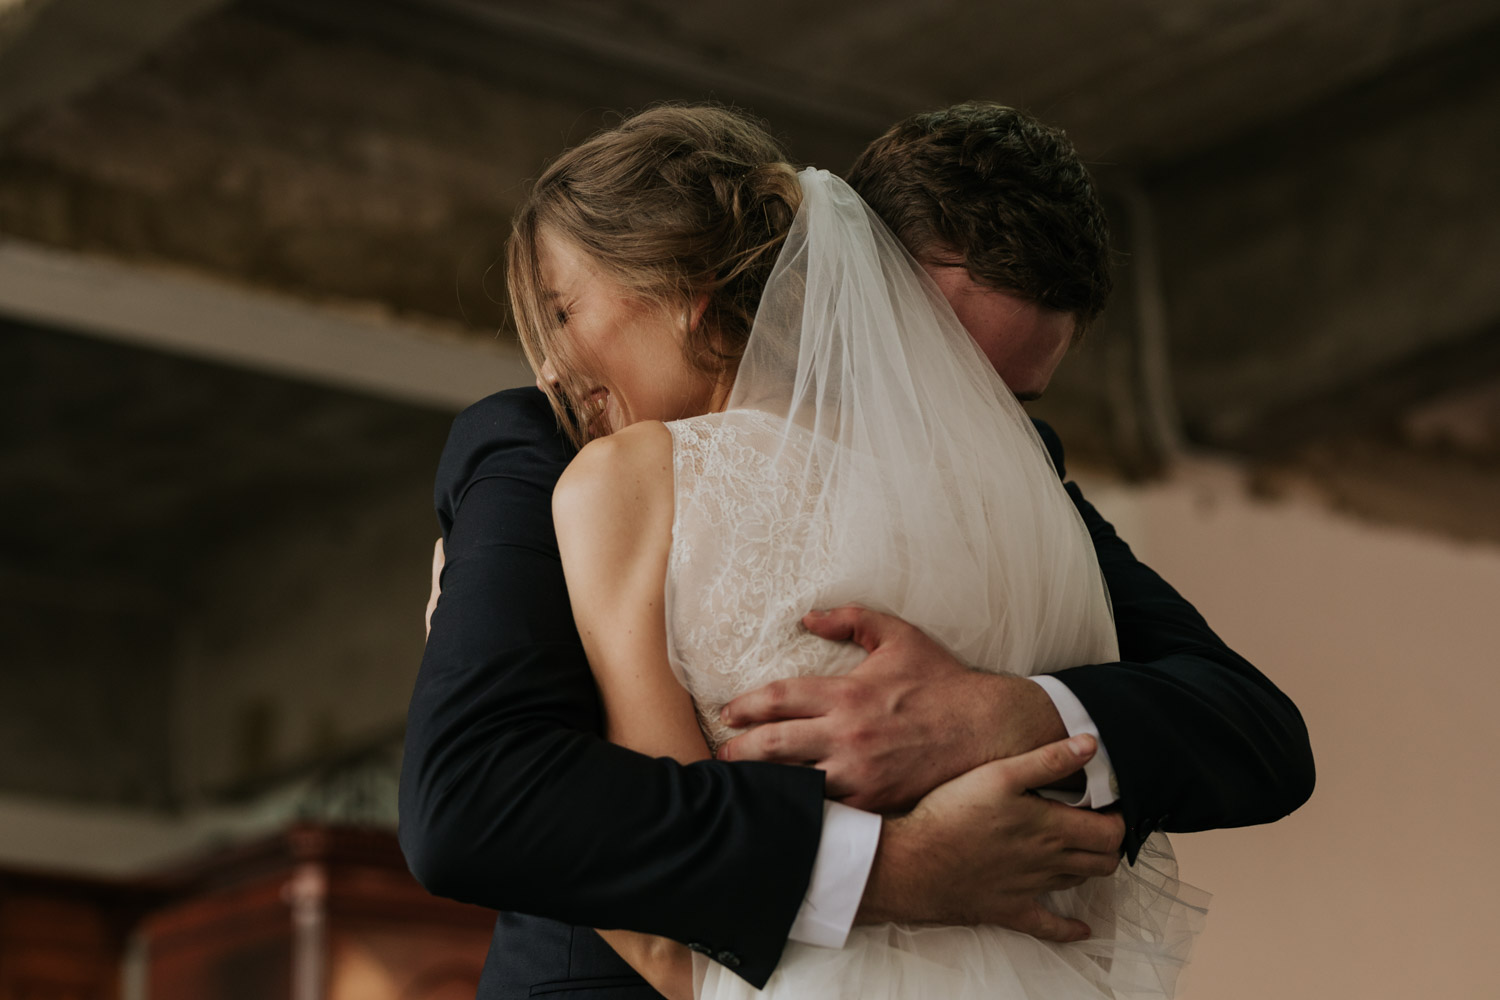 Raw Un-staged Happy Emotional Moment Between Bride And Groom